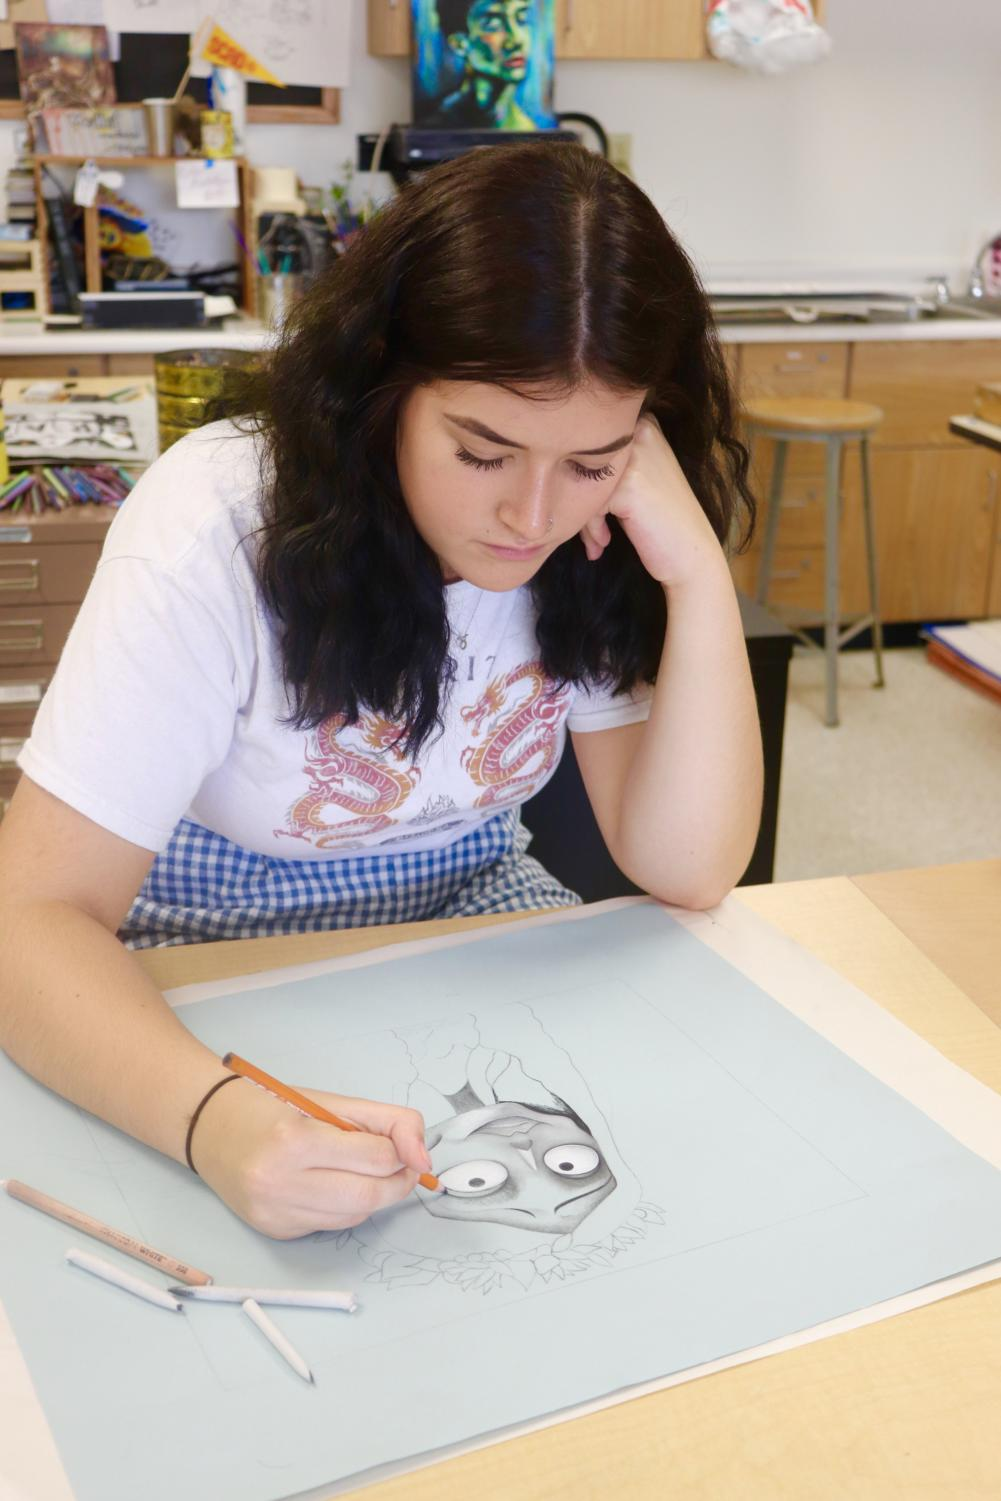 LIFE+IN+BLACK+AND+WHITE%3A+Kenley+Williams%2C+Drawing+3-4+student+and+junior%2C+lays+the+foundation+for+her+most+recent+piece+during+class+on+Tuesday%2C+Sept.+3.+The+drawing+students+had+recently+been+assigned+black+and+white+drawings+using+colored+pencils%2C+requiring+a+variety+of+blending+and+shading+techniques.+Williams%2C+as+well+as+many+other+students%2C+utilized+a+gothic+subject+for+her+piece+in+order+to+work+with+a+variety+of+shadows.